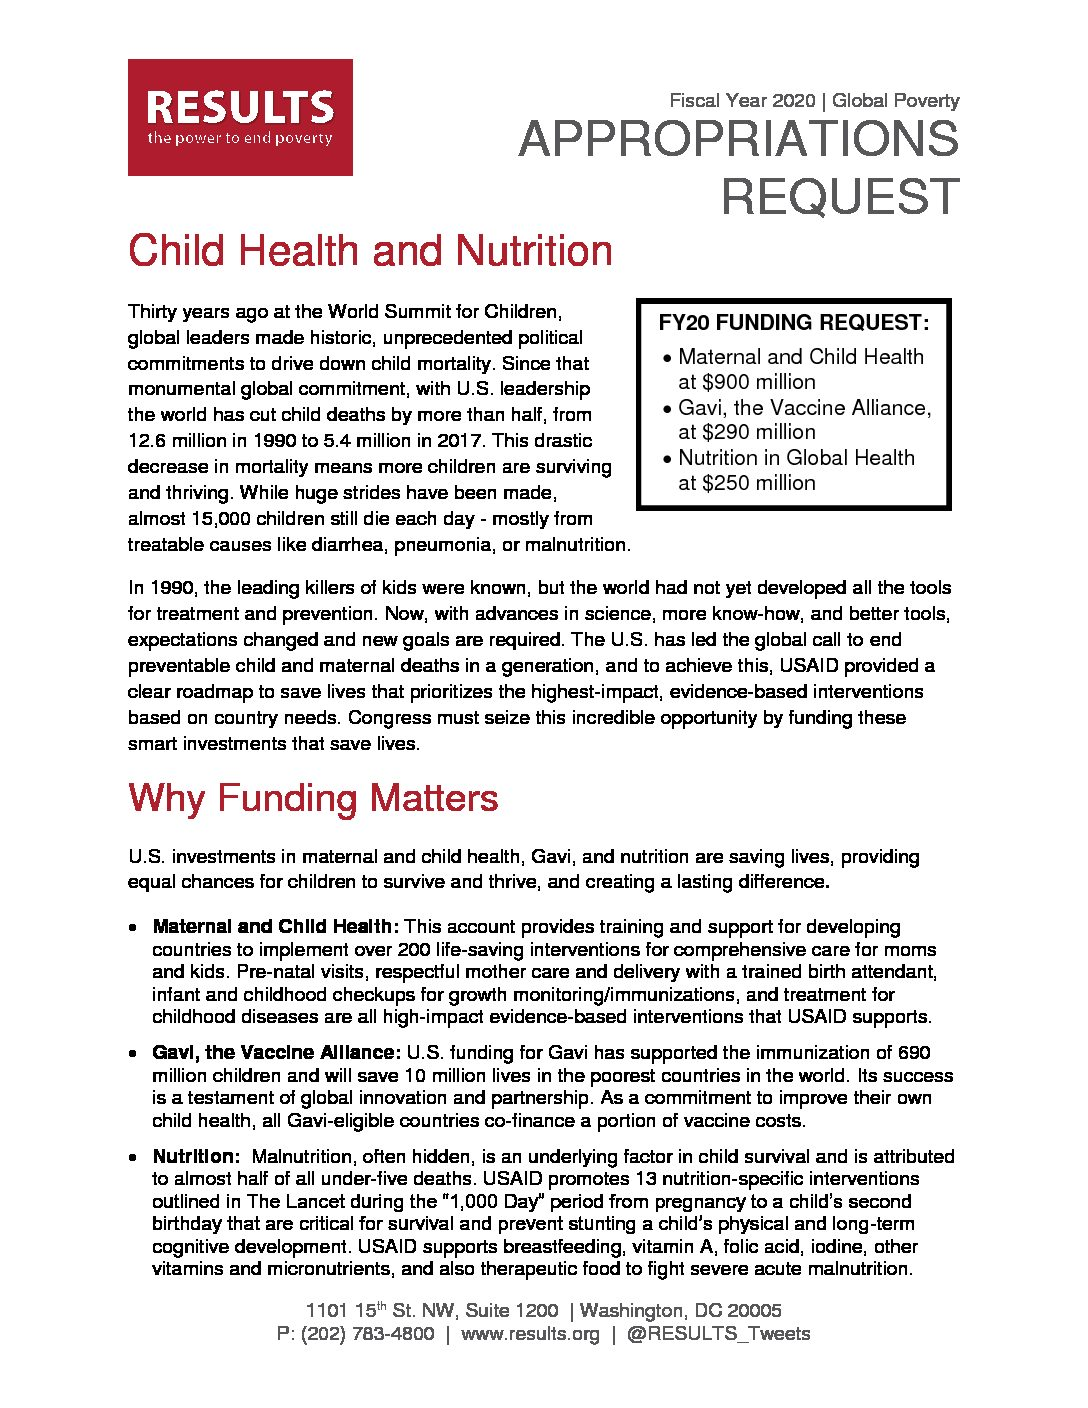 FY20 Child Health and Nutrition Appropriations Request